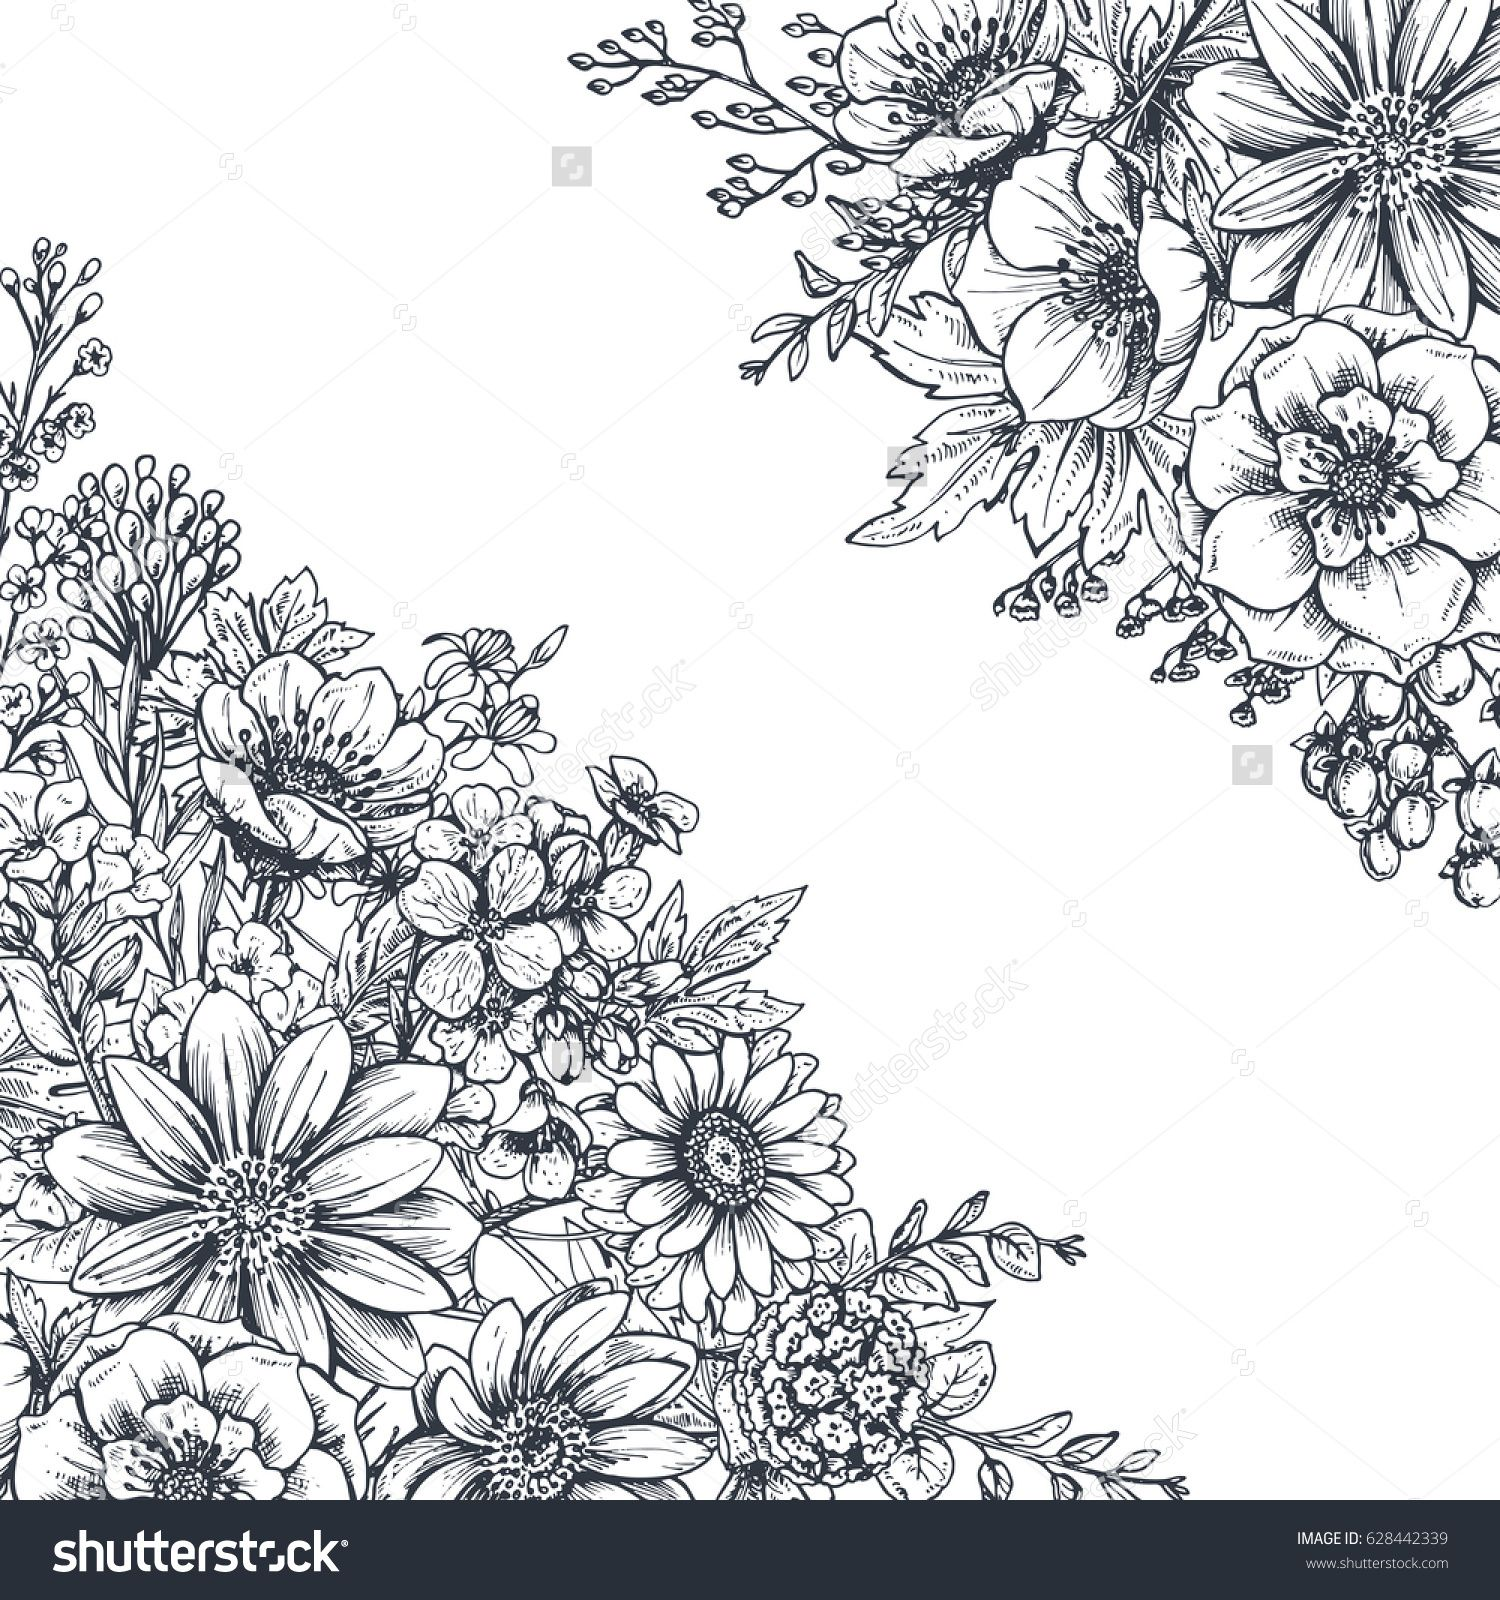 Floral backgrounds with hand drawn flowers and plants